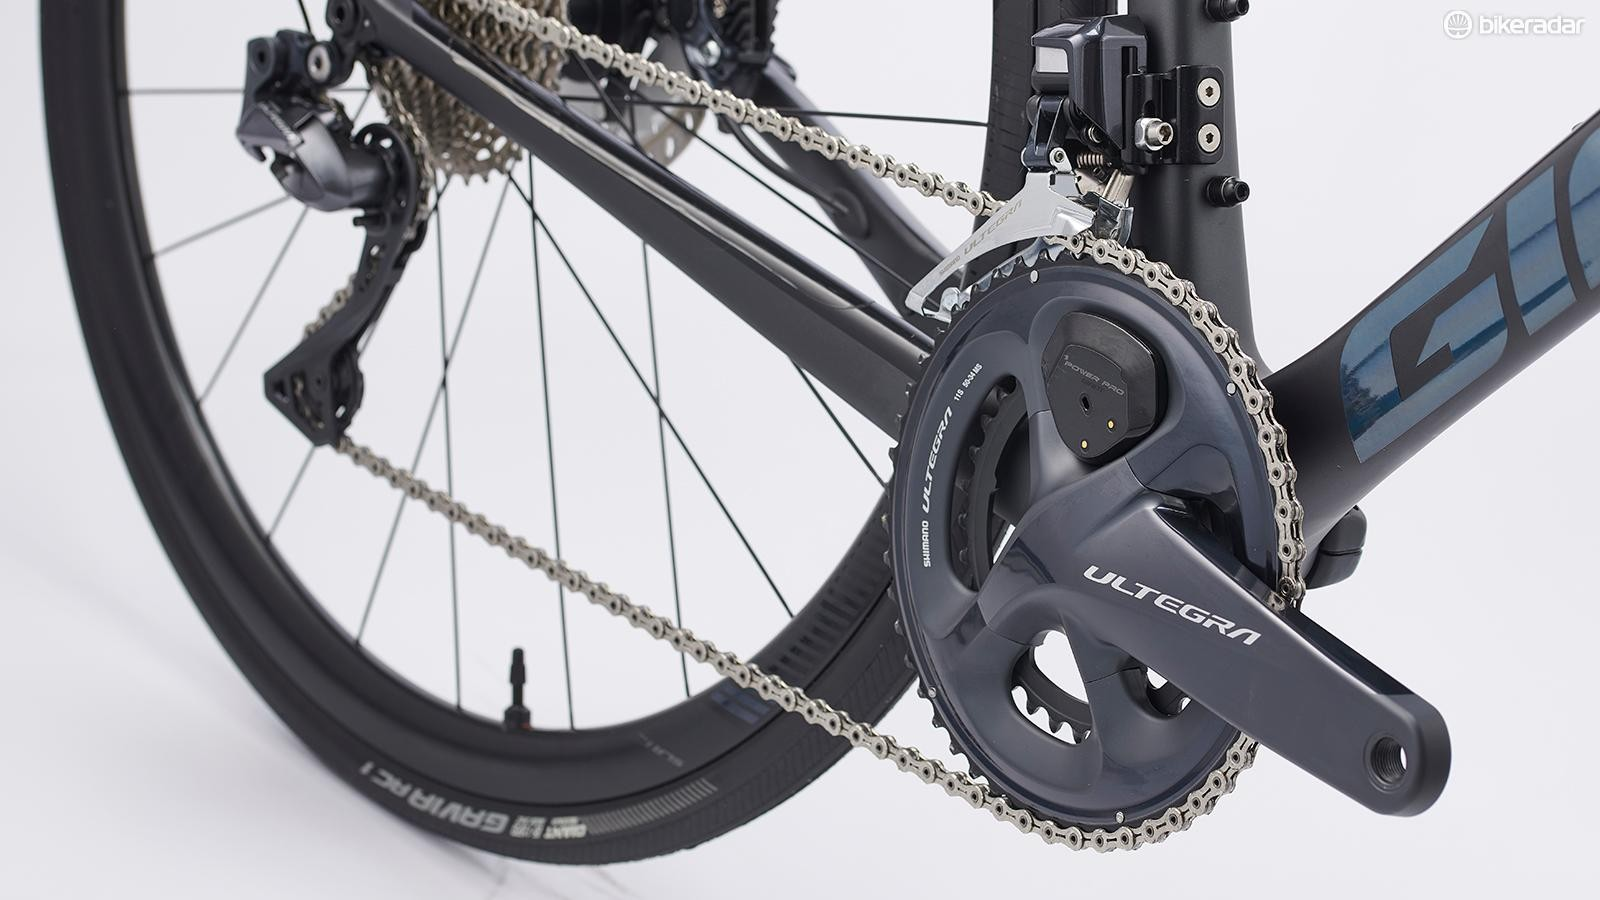 Shimano Ultegra with a Giant Power Pro double-sided power meter included